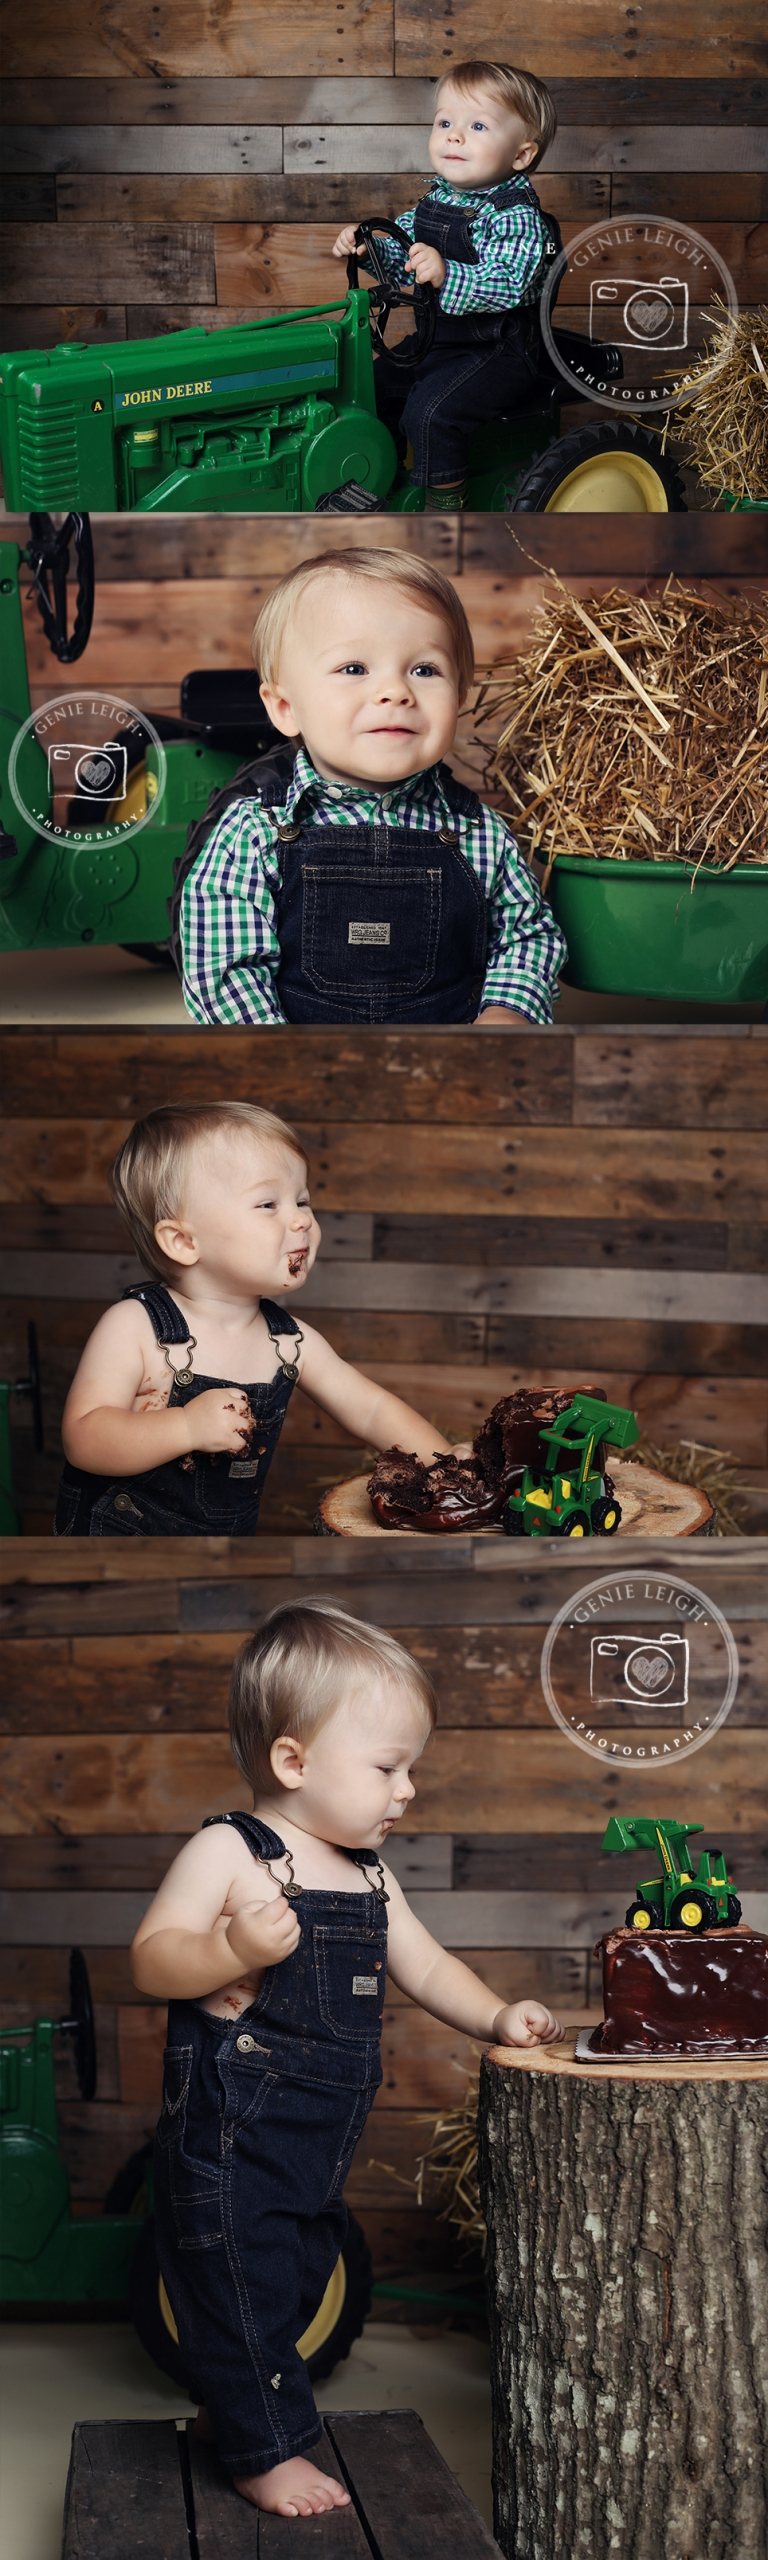 John Deere Cake Smash Birthday Session, Genie Leigh Photography Studios